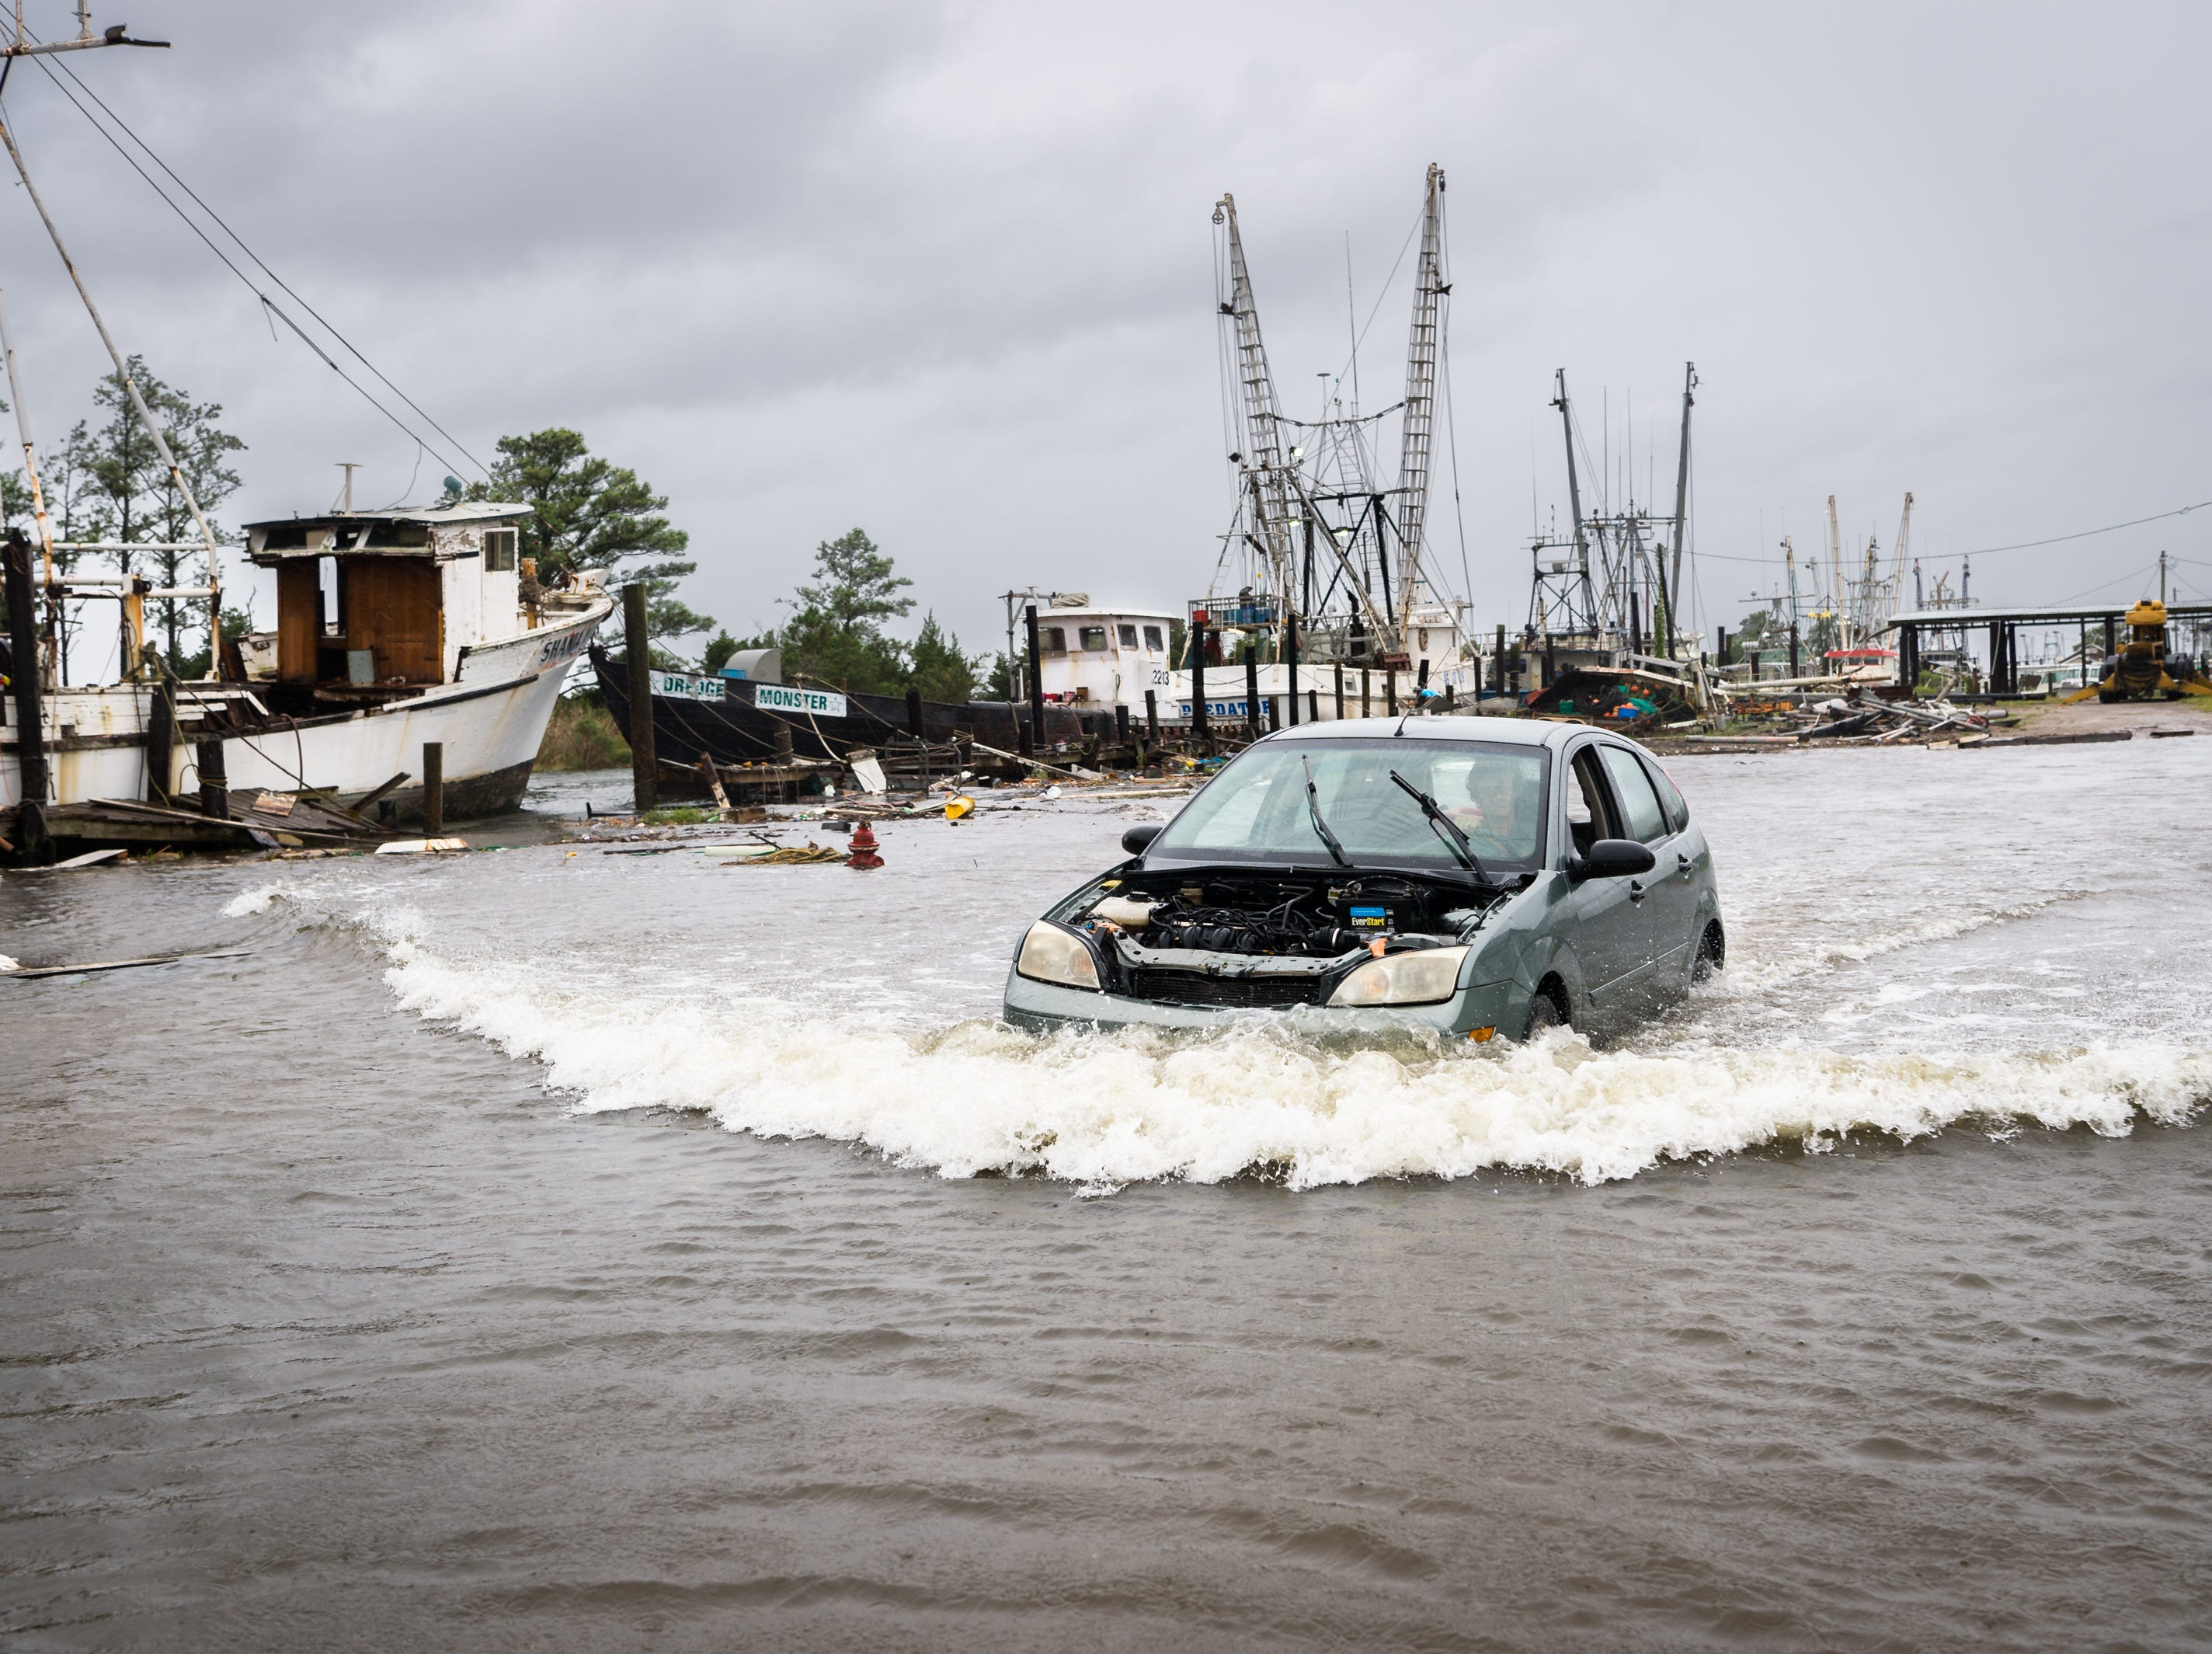 A motorist drives through a flooded area in the Swan Quarter harbor in Swan Quarter, N.C as Hurricane Florence nears the coastline, Sept. 13, 2018.